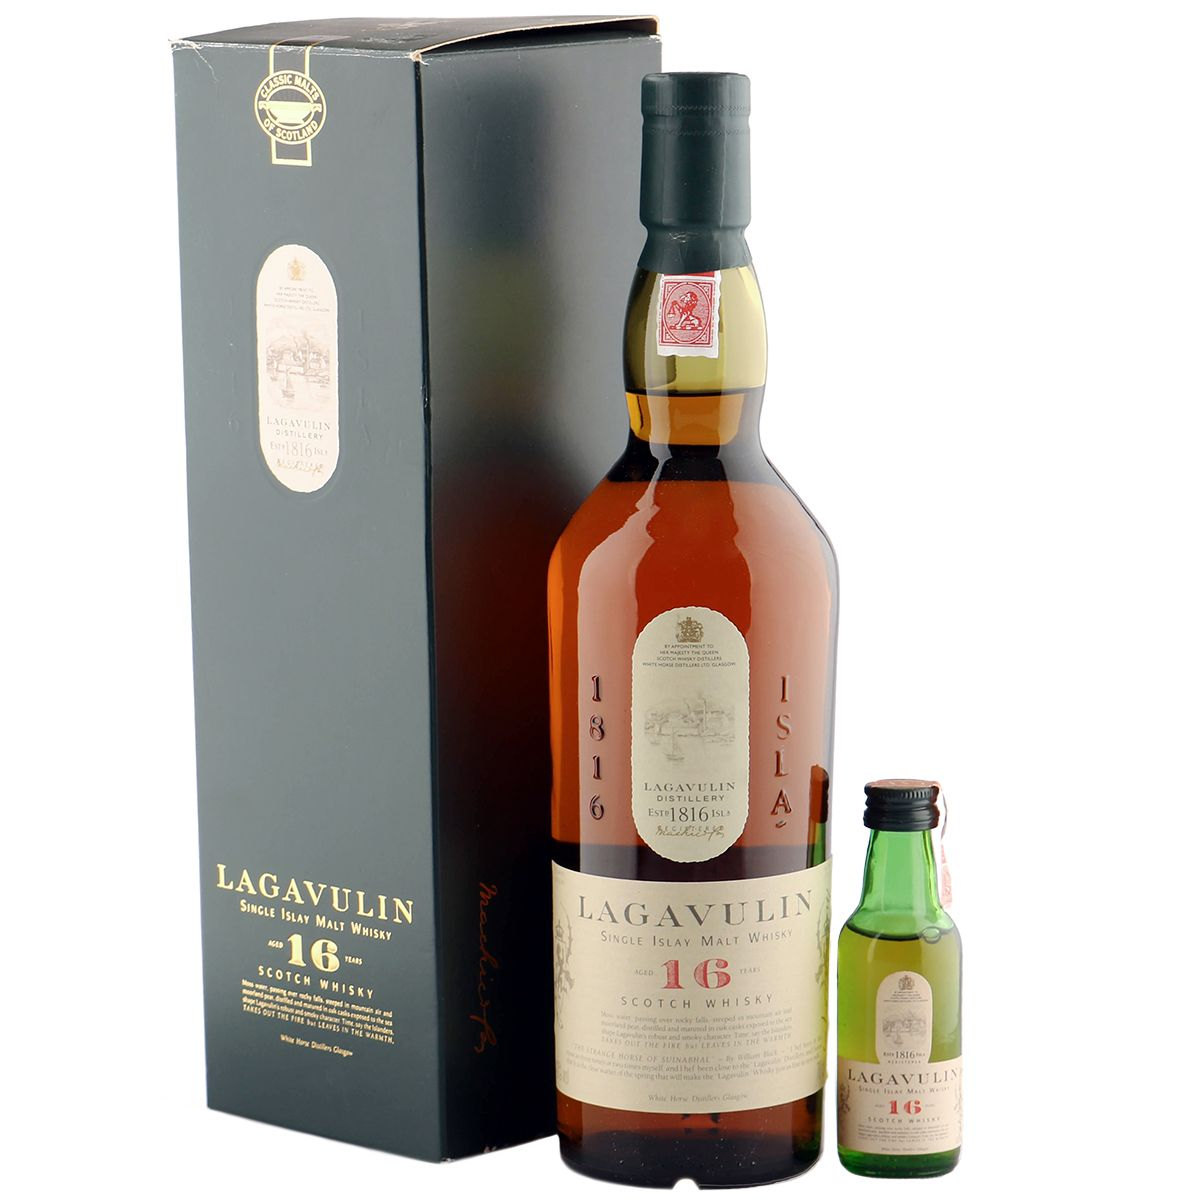 Lagavulin 16 Year Old, White Horse Distillers | The Whisky Vault